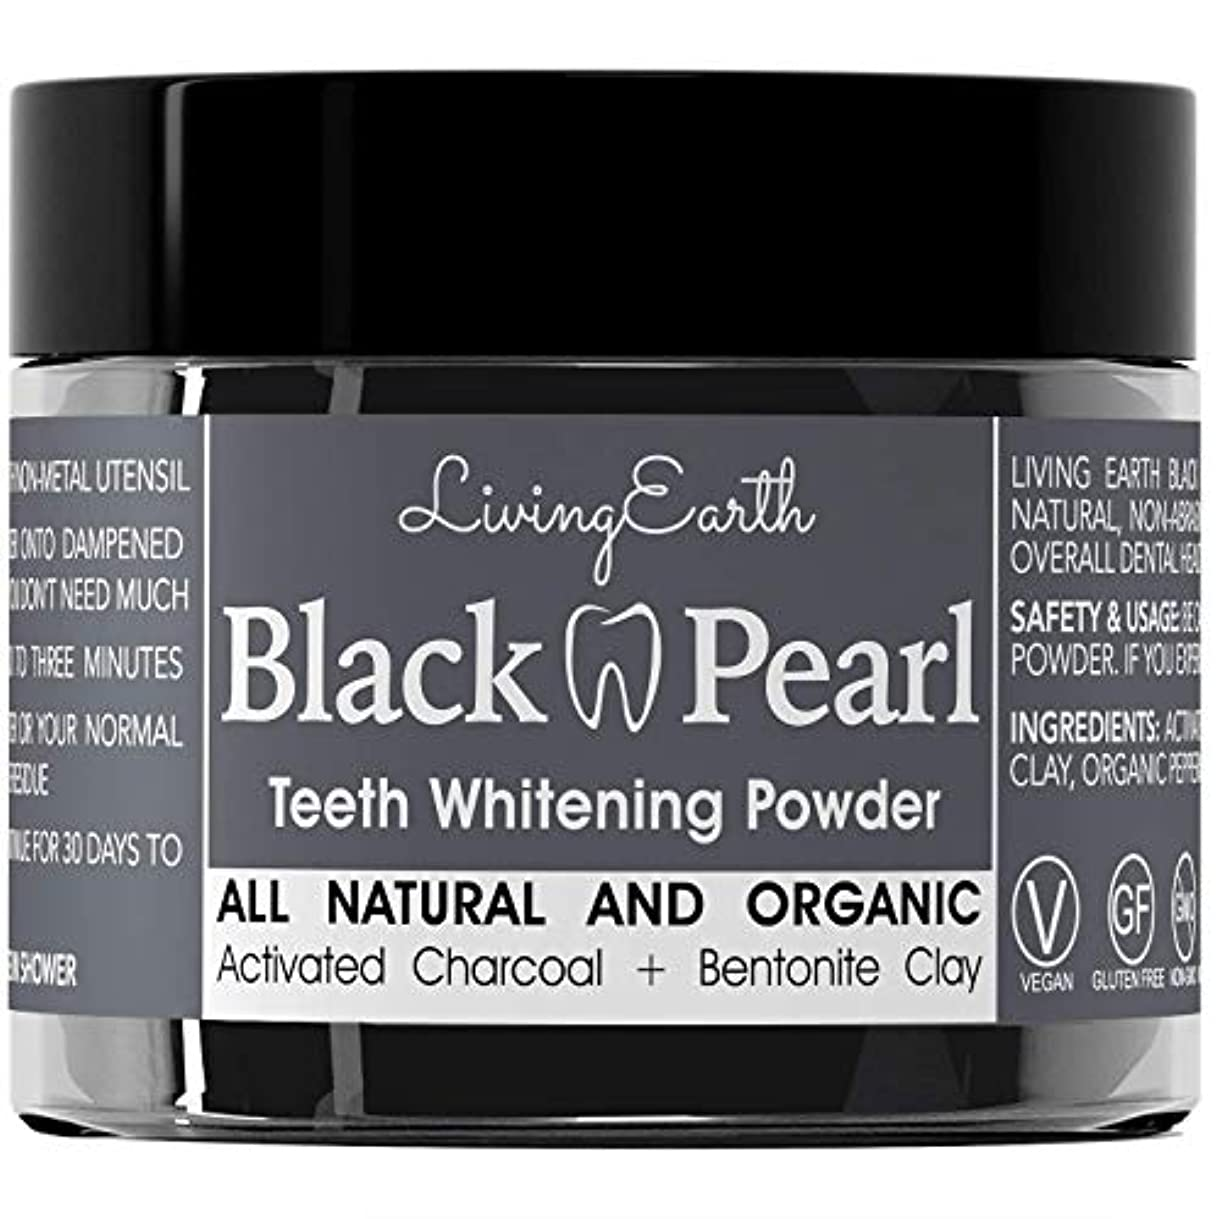 Black Pearl Activated Charcoal Teeth Whitening - Organic & All Natural - Remineralizing Tooth Powder - Anti-Bacterial...